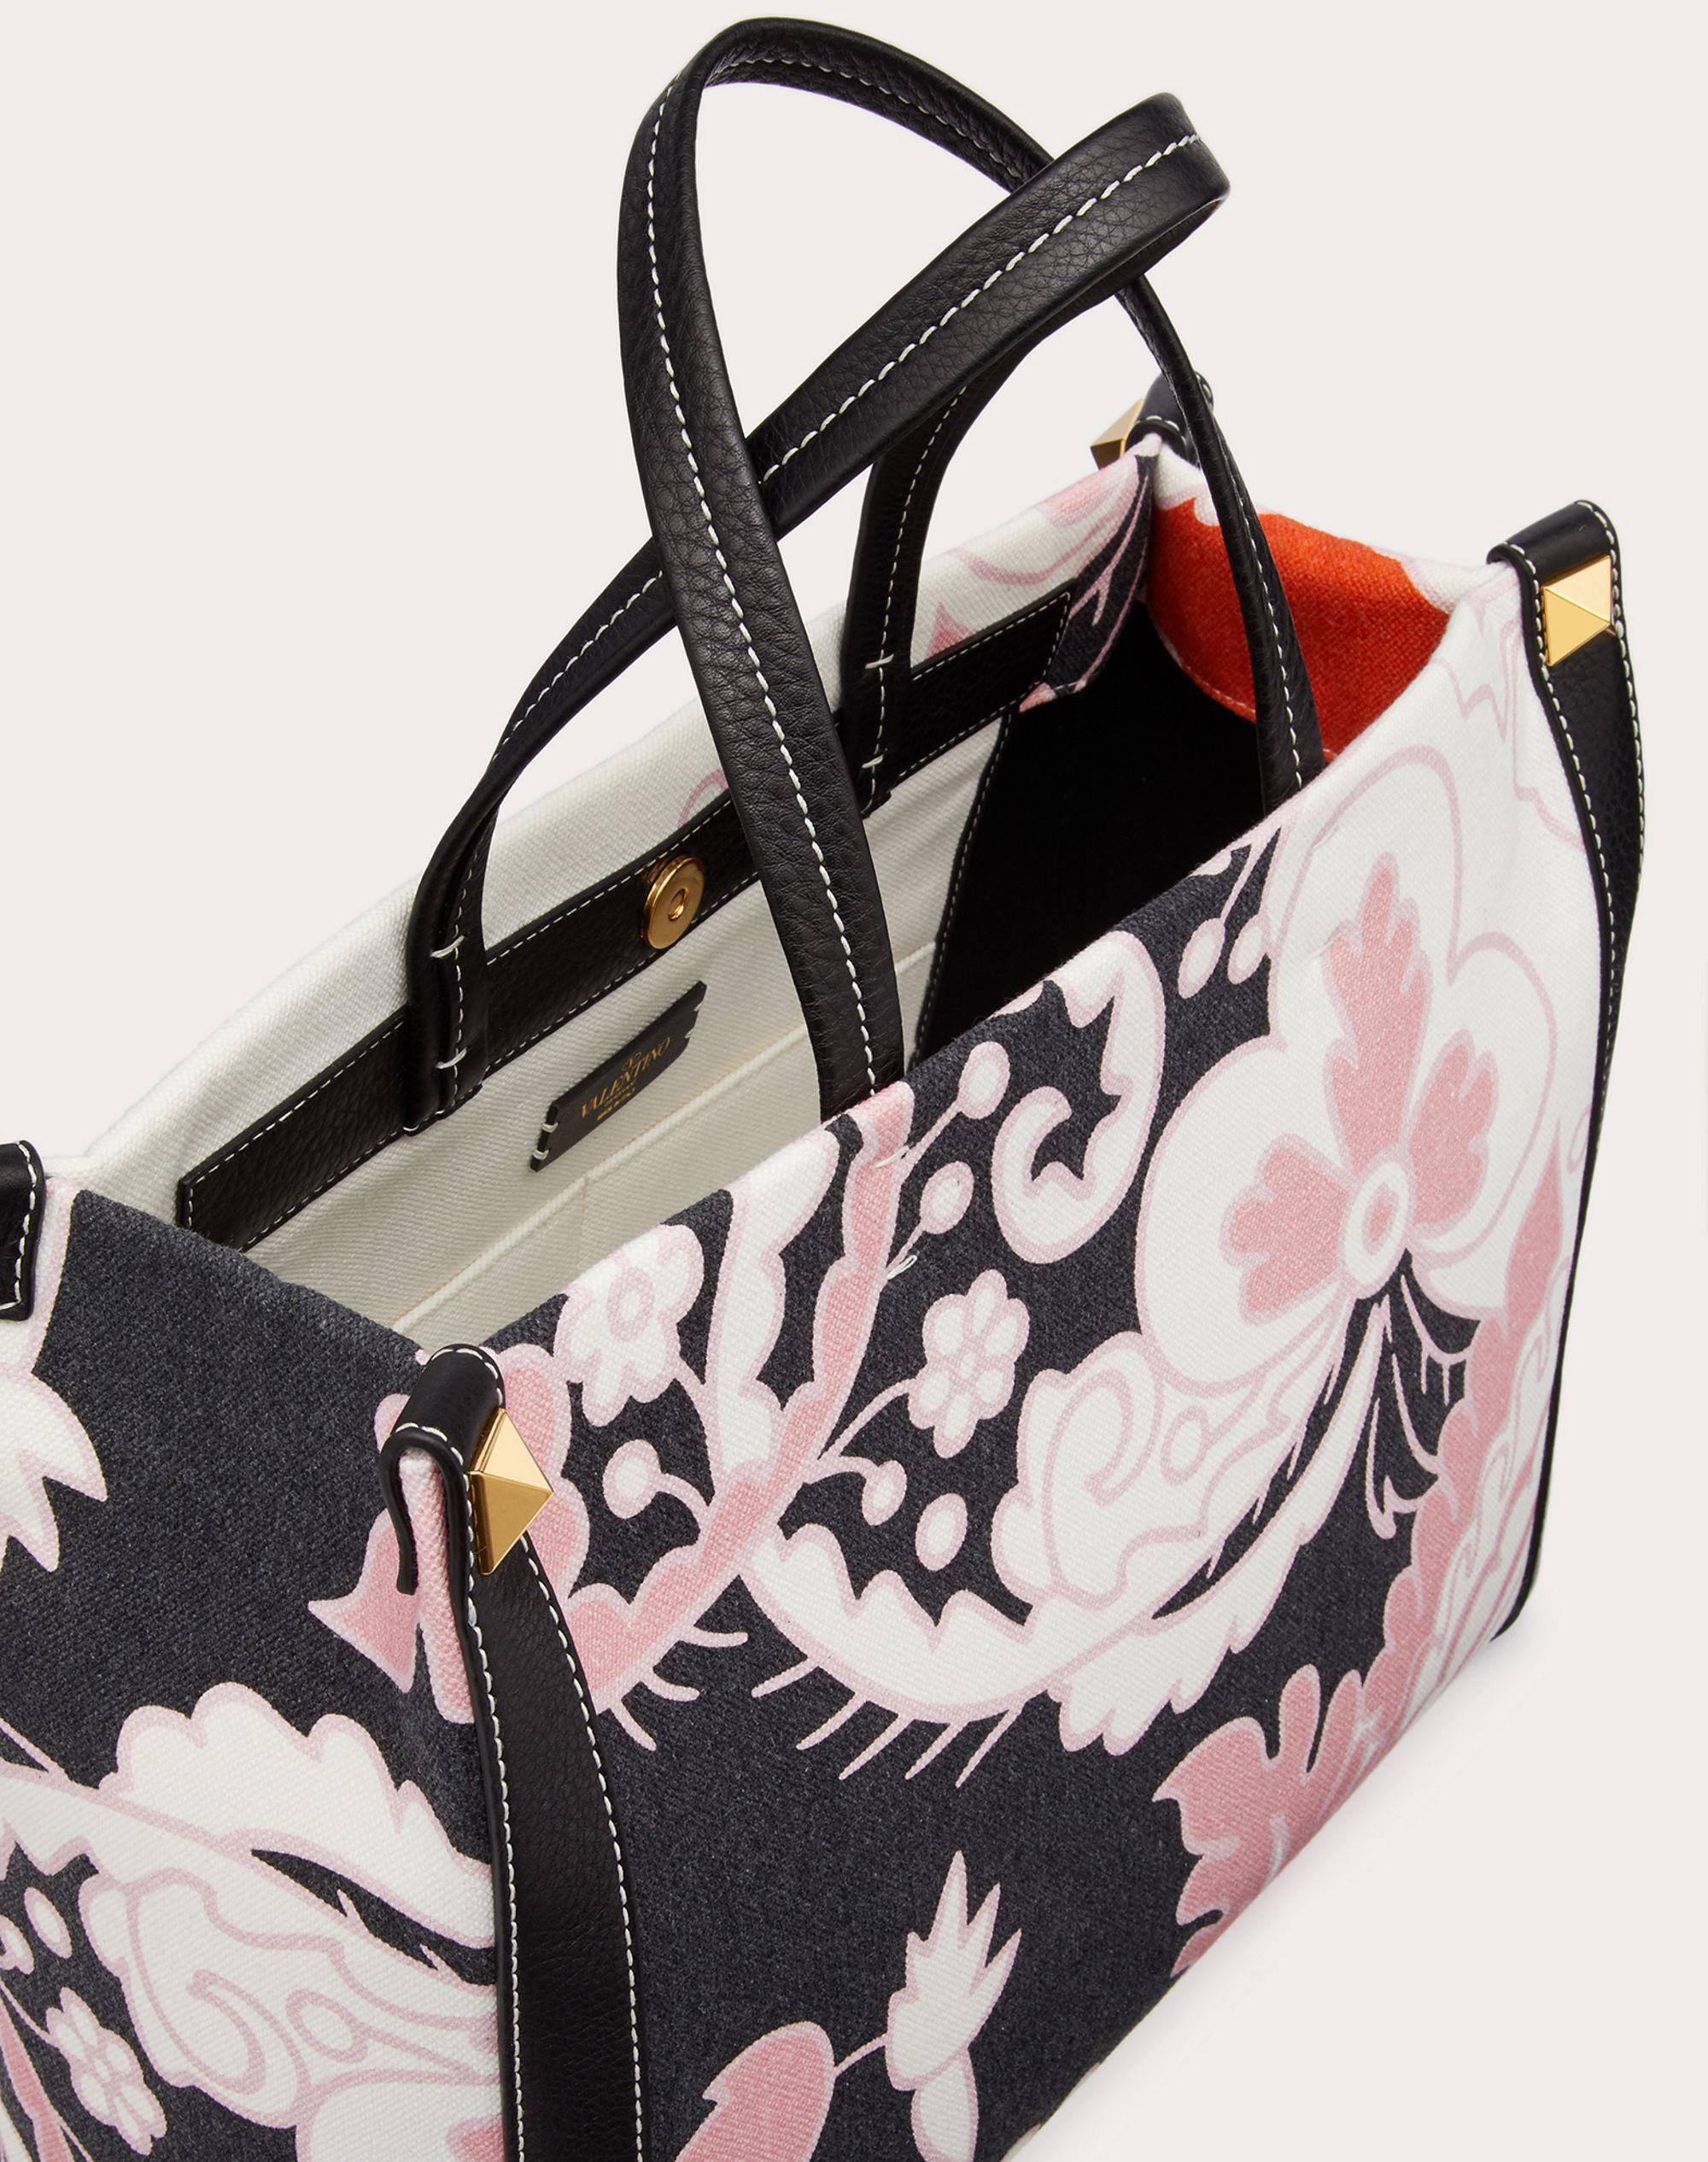 Small Canvas Tote Bag with Print 3